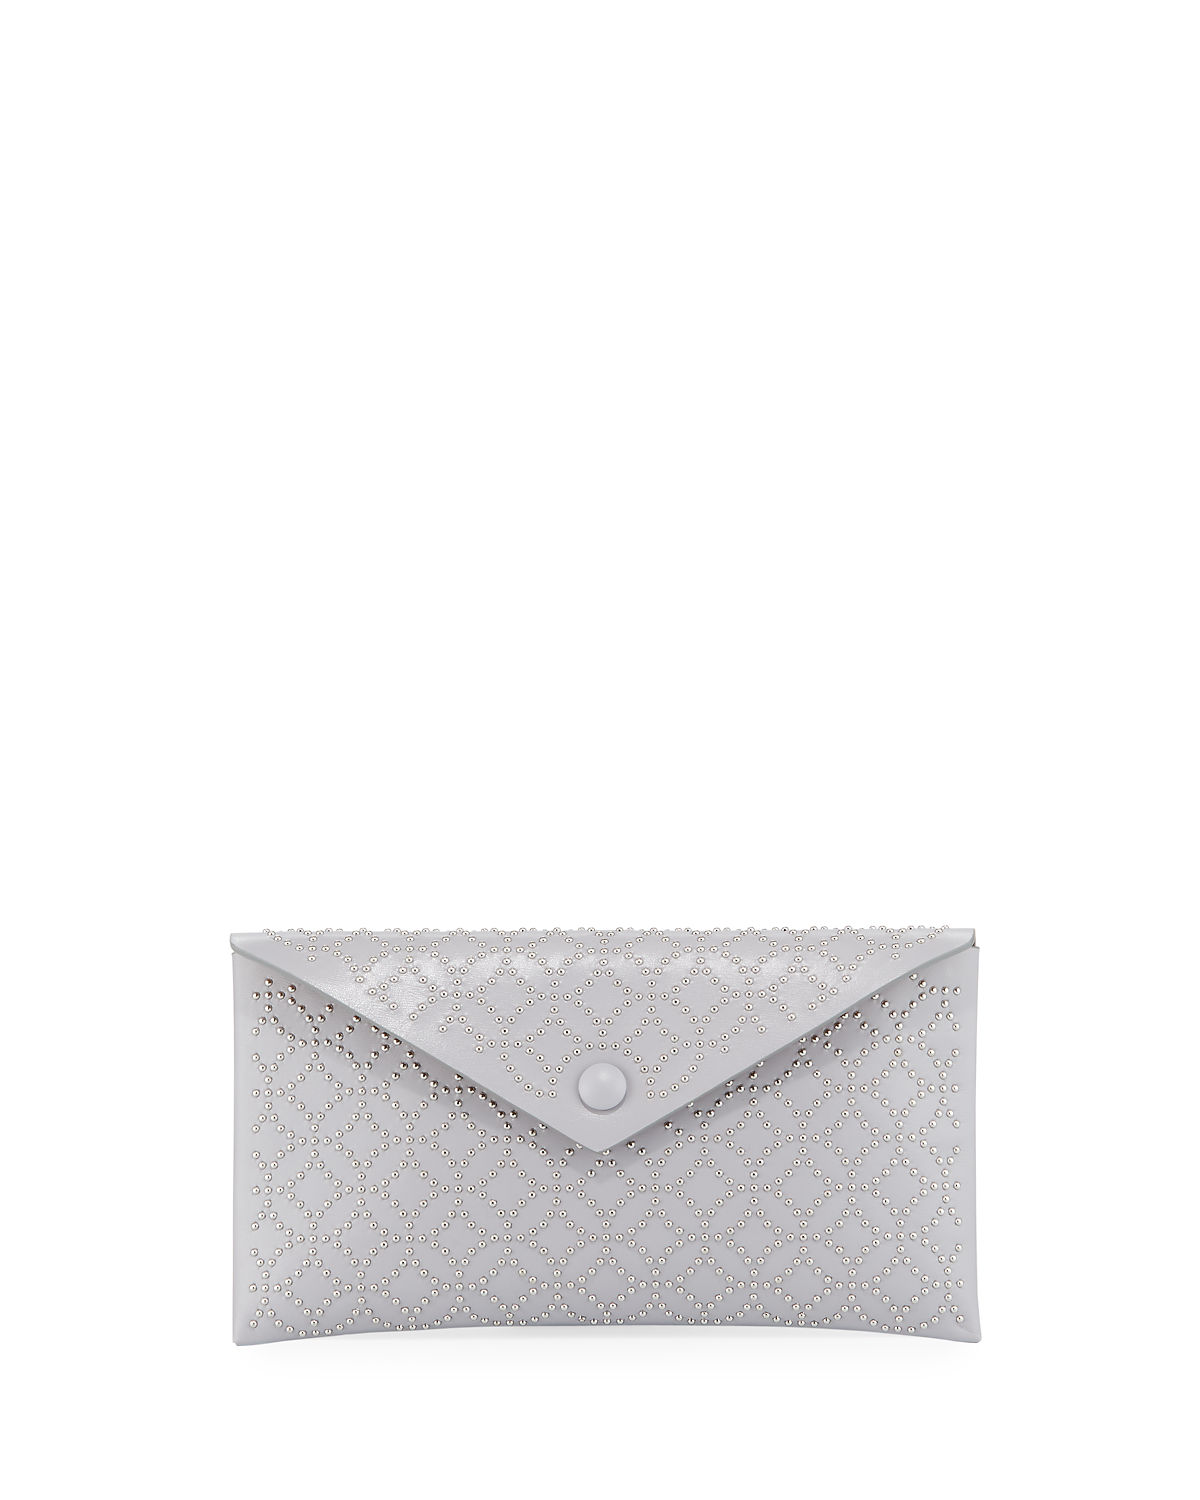 Alaïa Clutch BEADED ENVELOPE CLUTCH BAG